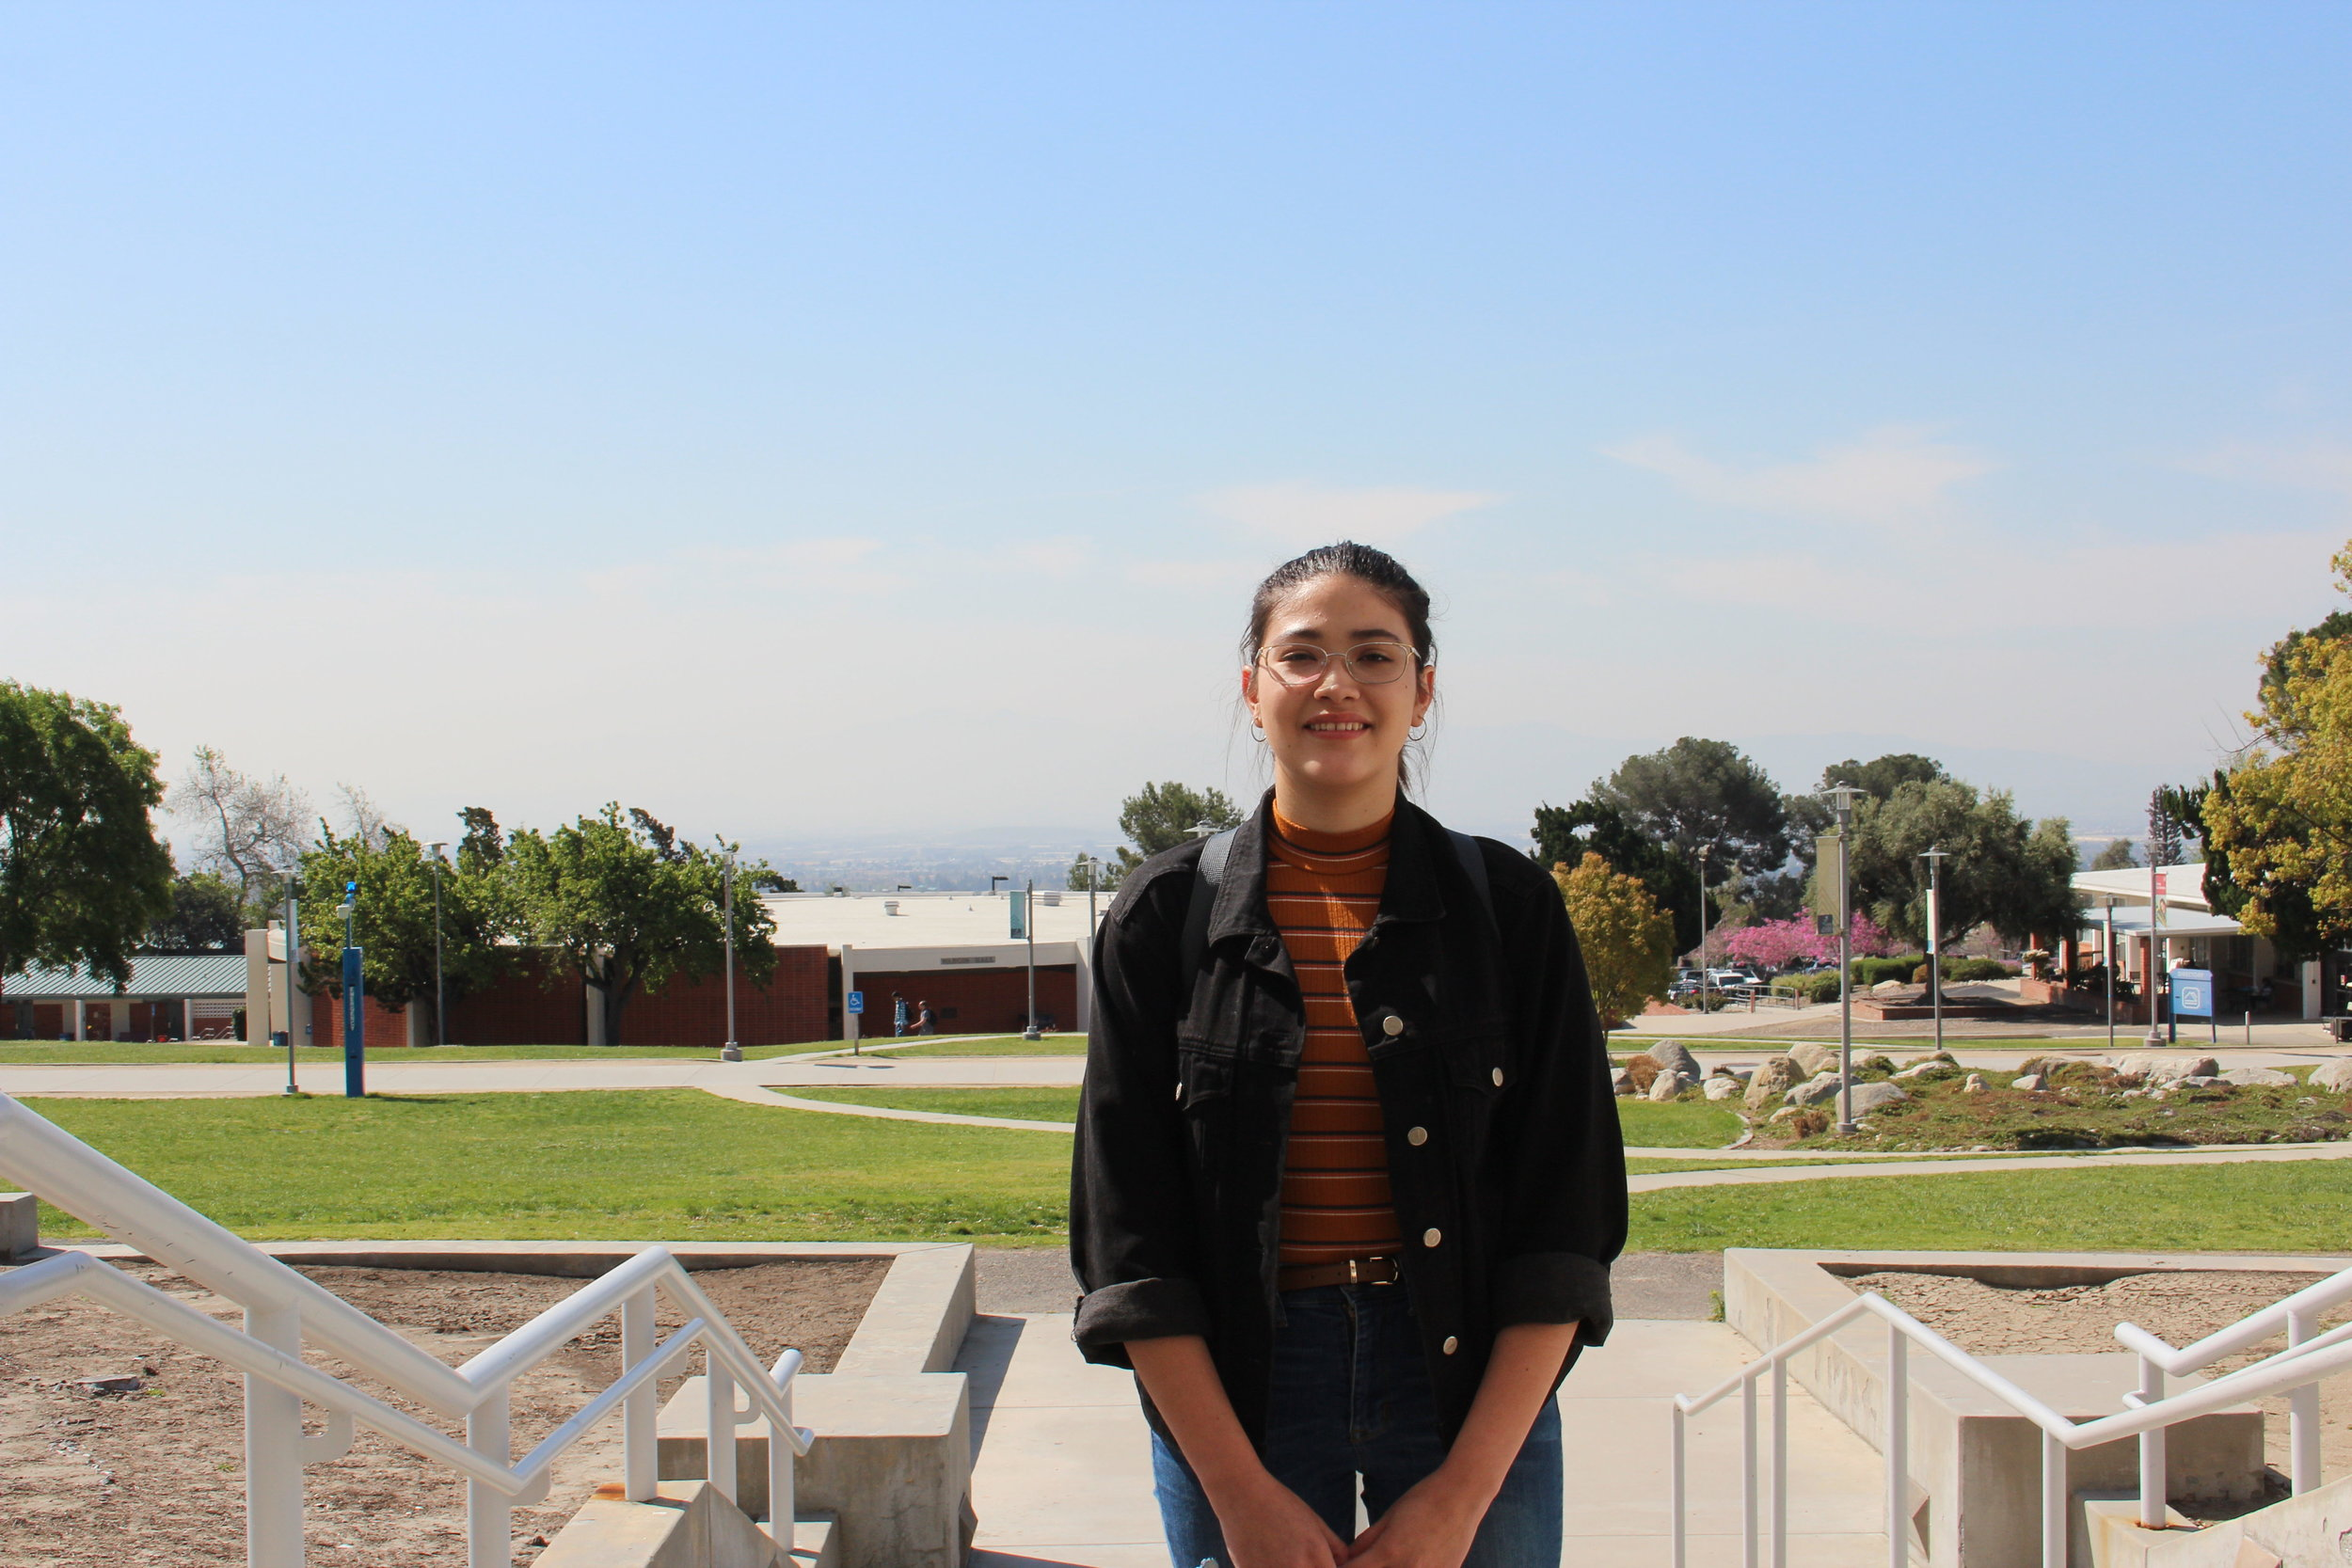 Student Daniela Fabian at Chaffey Community College. Photos by Paris Barraza.